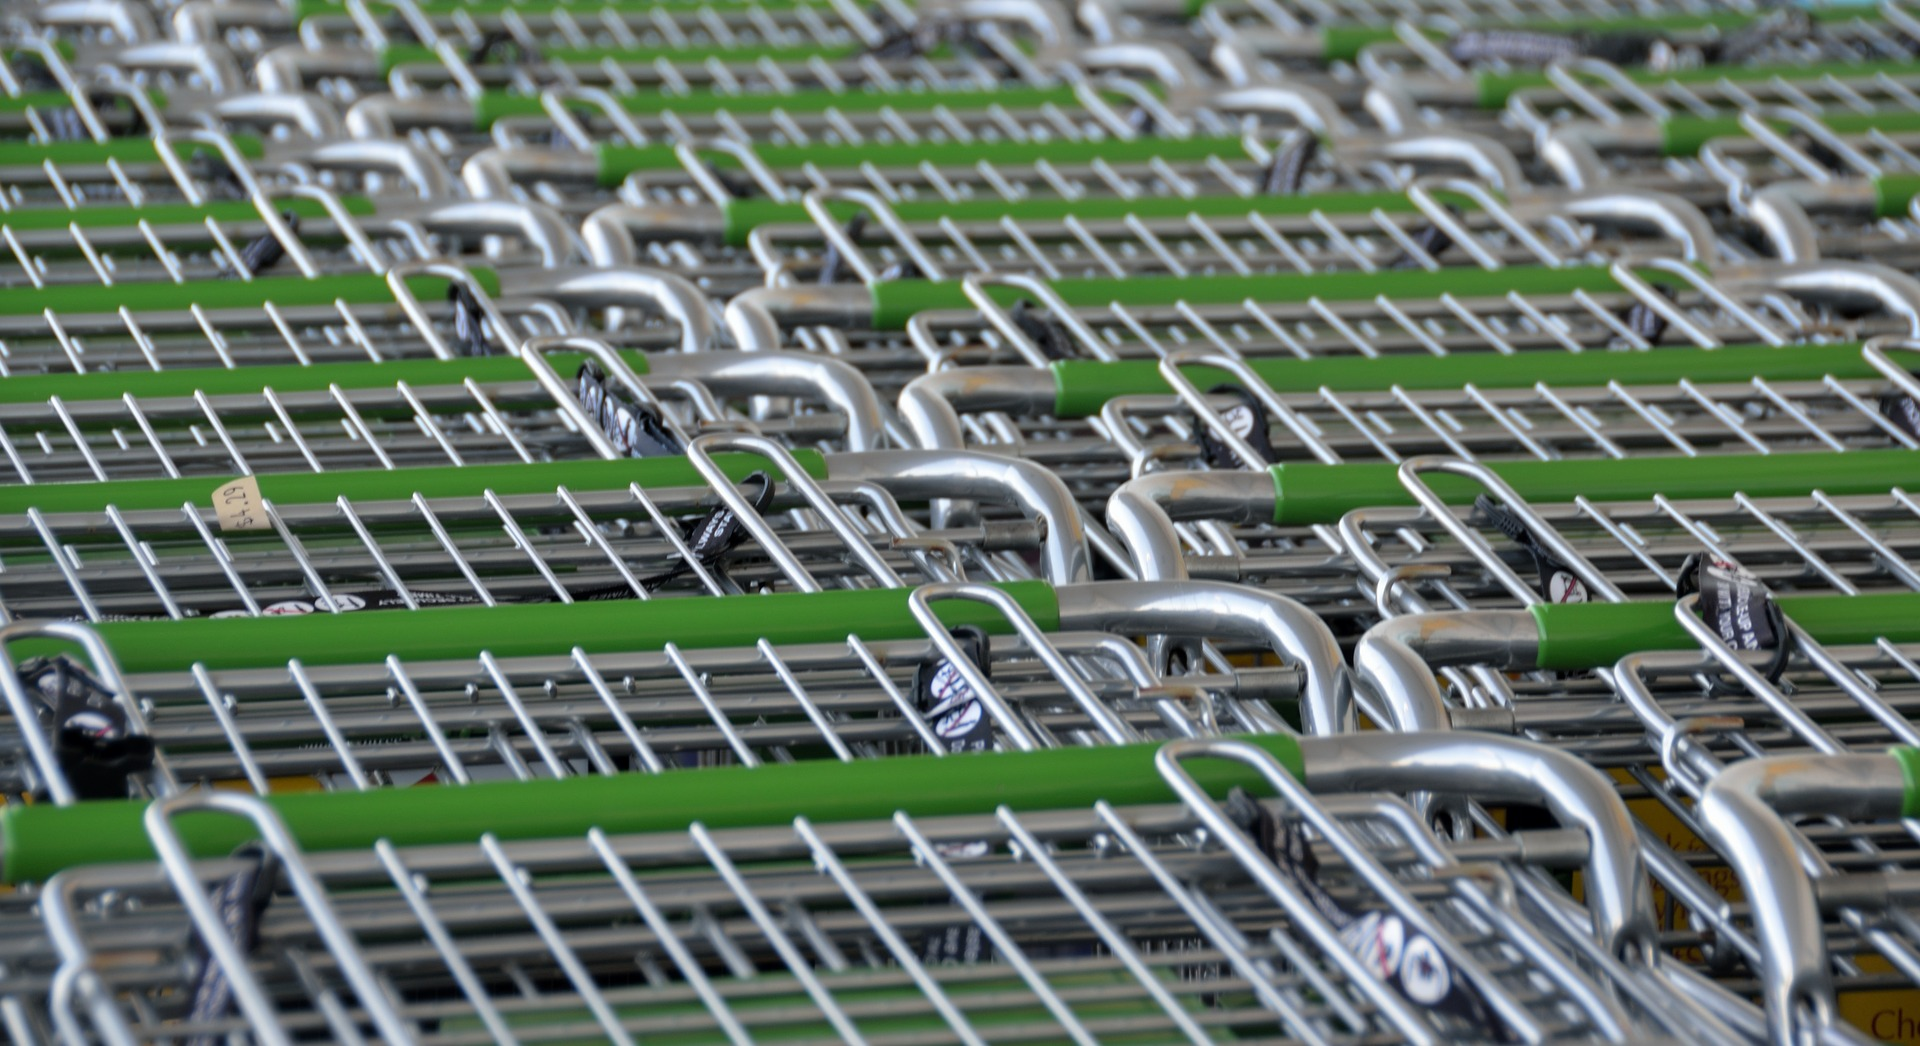 shopping-carts-2077841_1920